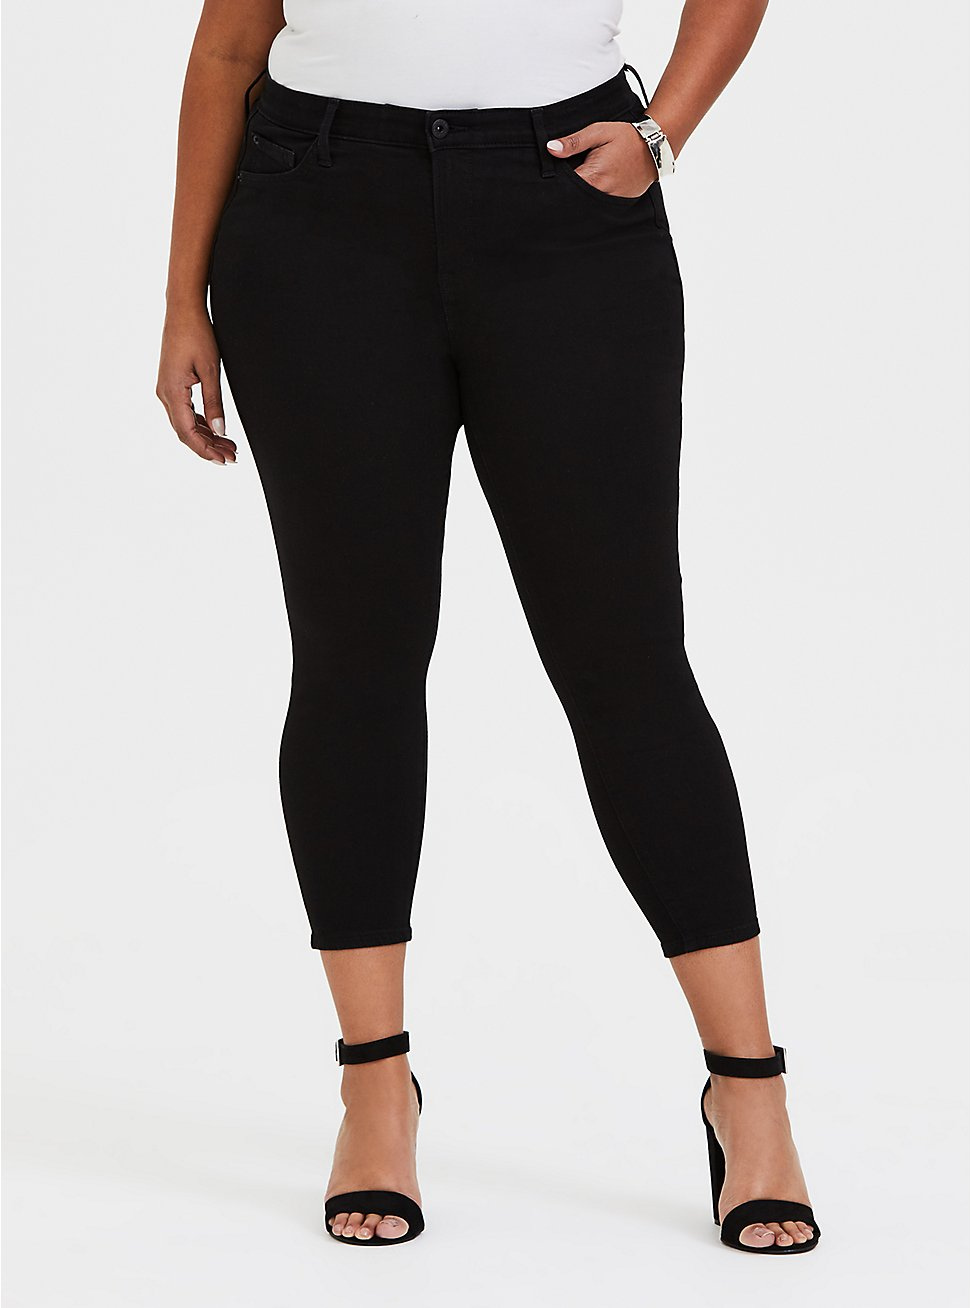 Plus Size Crop Sky High Skinny Jean - Premium Stretch Black, BLACK, hi-res